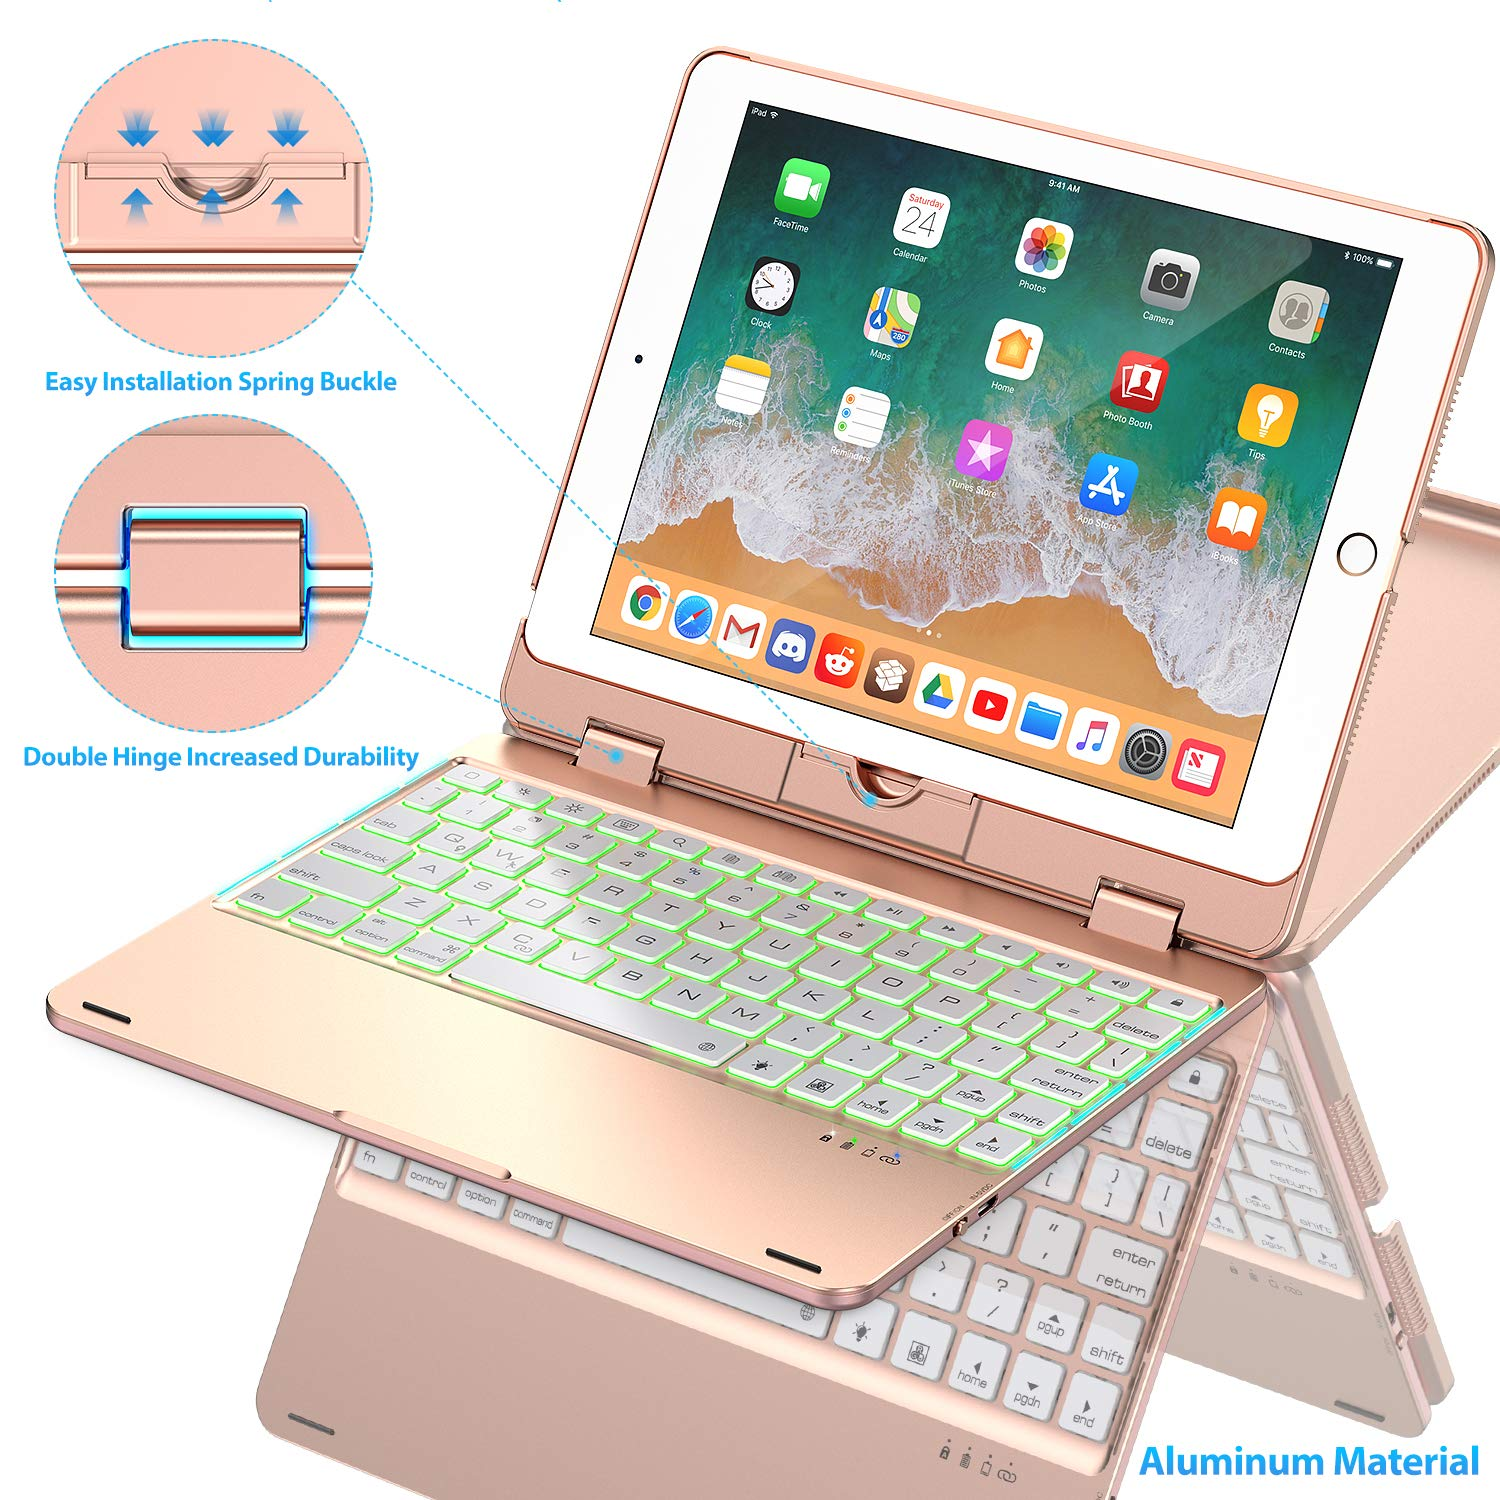 Phixnozar F1 Keyboard Case Compatible with iPad 2018 (6th Gen)/2017 (5th Gen)/Pro 9.7/Air 2 & 1 | Double-Rotating Hinge & Aluminum Keyboard/Case | Colorful Backlit Keys & Long Working Time (Rose Gold)